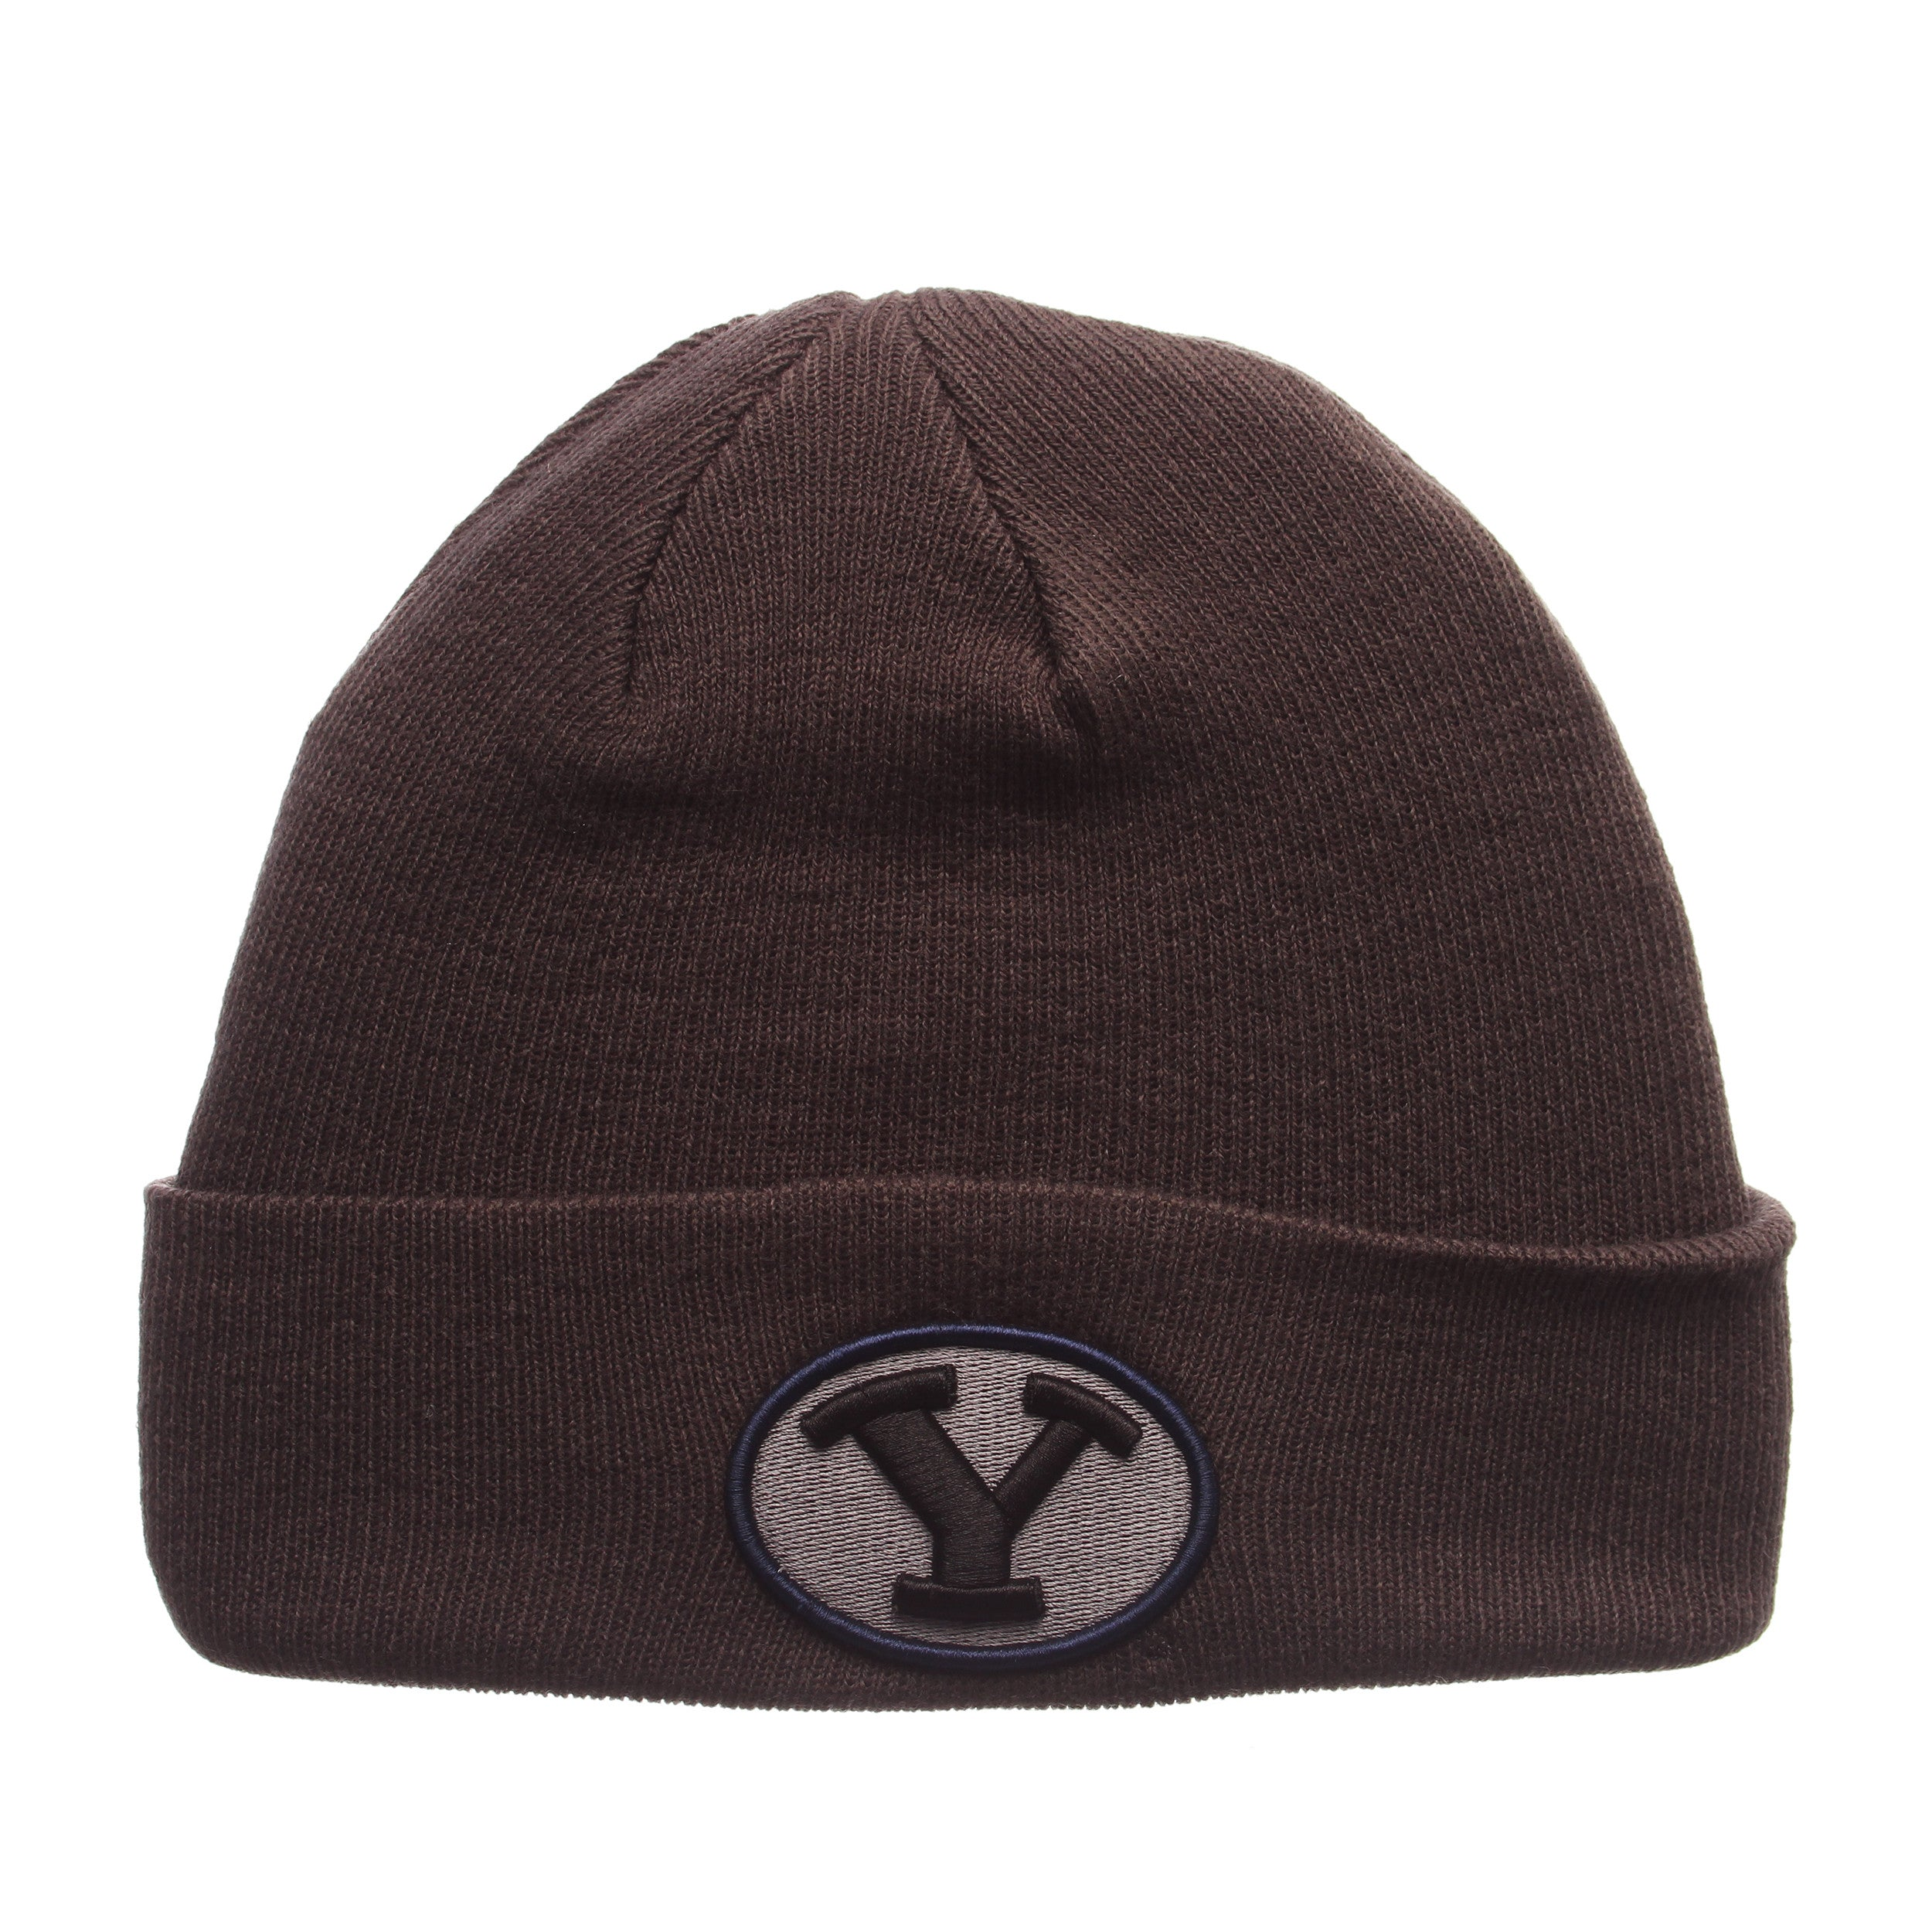 Brigham Young University Pop Knit Knit (Fold) (Y OVAL) Gray Confederate Knit Adjustable hats by Zephyr